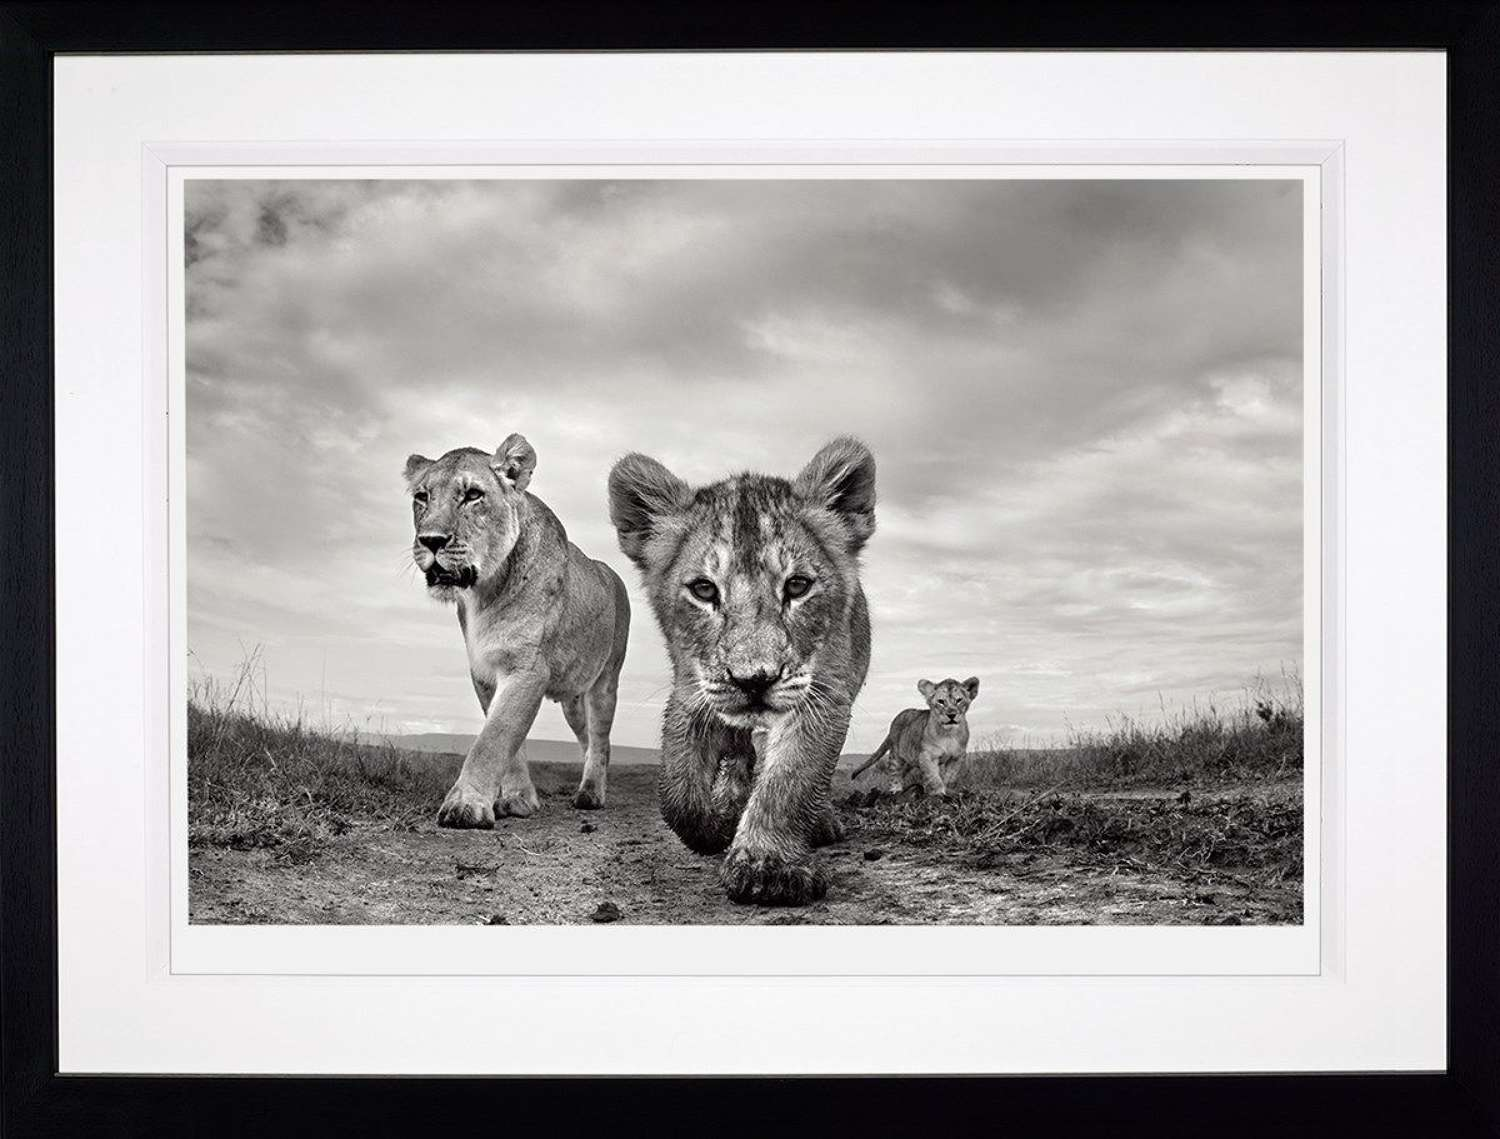 On the Move - (Deluxe) - Framed Photographic Art Print by Anup Shah